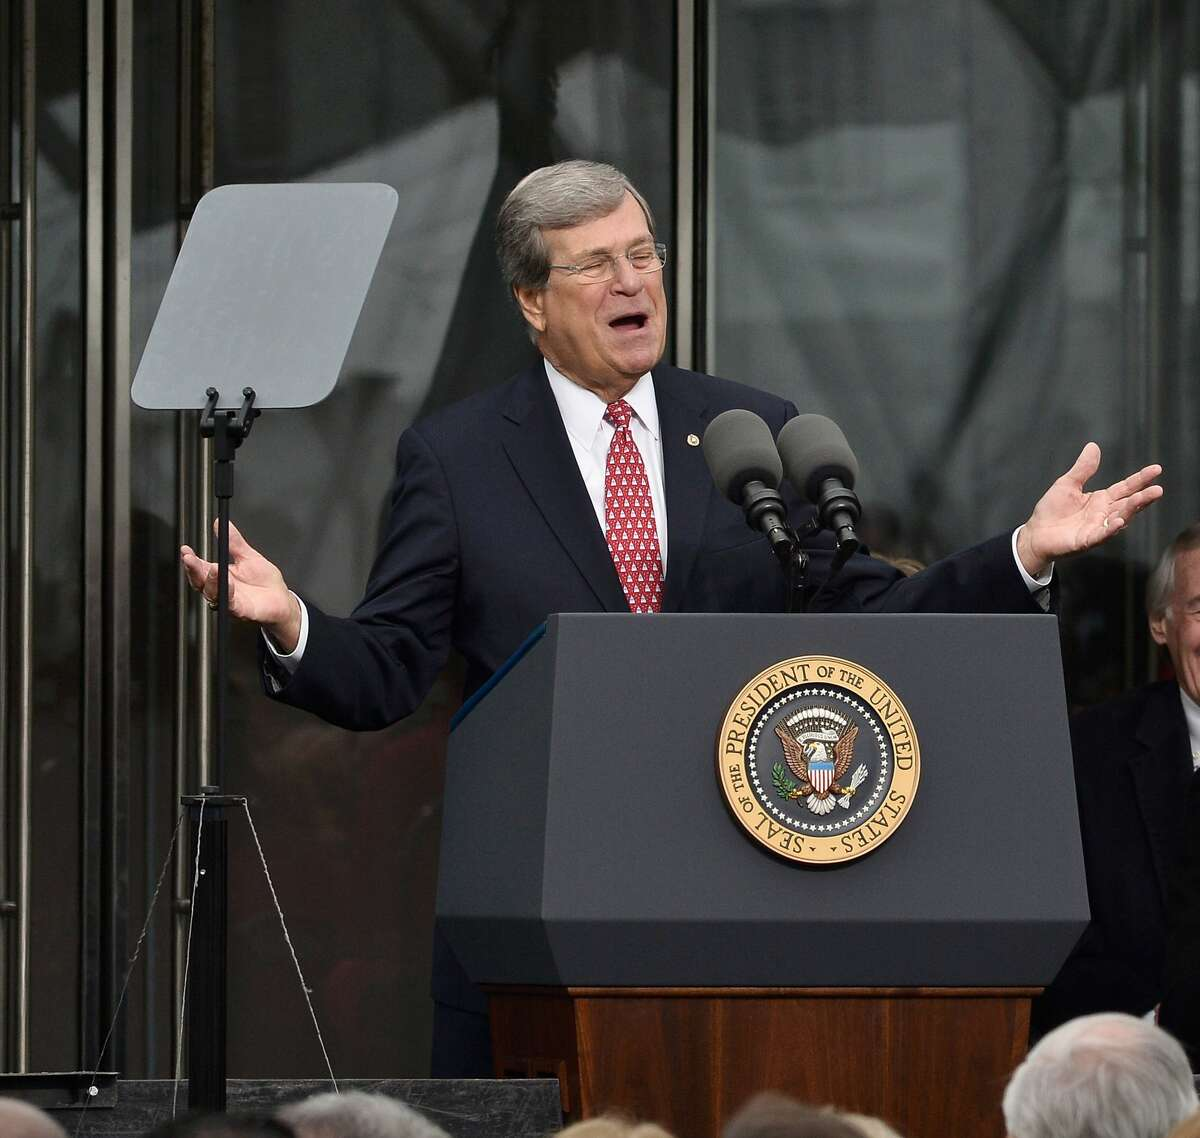 Former United States Senator Trent Lott speaks at the Dedication Ceremony at the Edward M. Kennedy Institute for the United States Senate on March 30, 2015 in Boston, Massachusetts. (Photo by Paul Marotta/Getty Images) ORG XMIT: 545626227